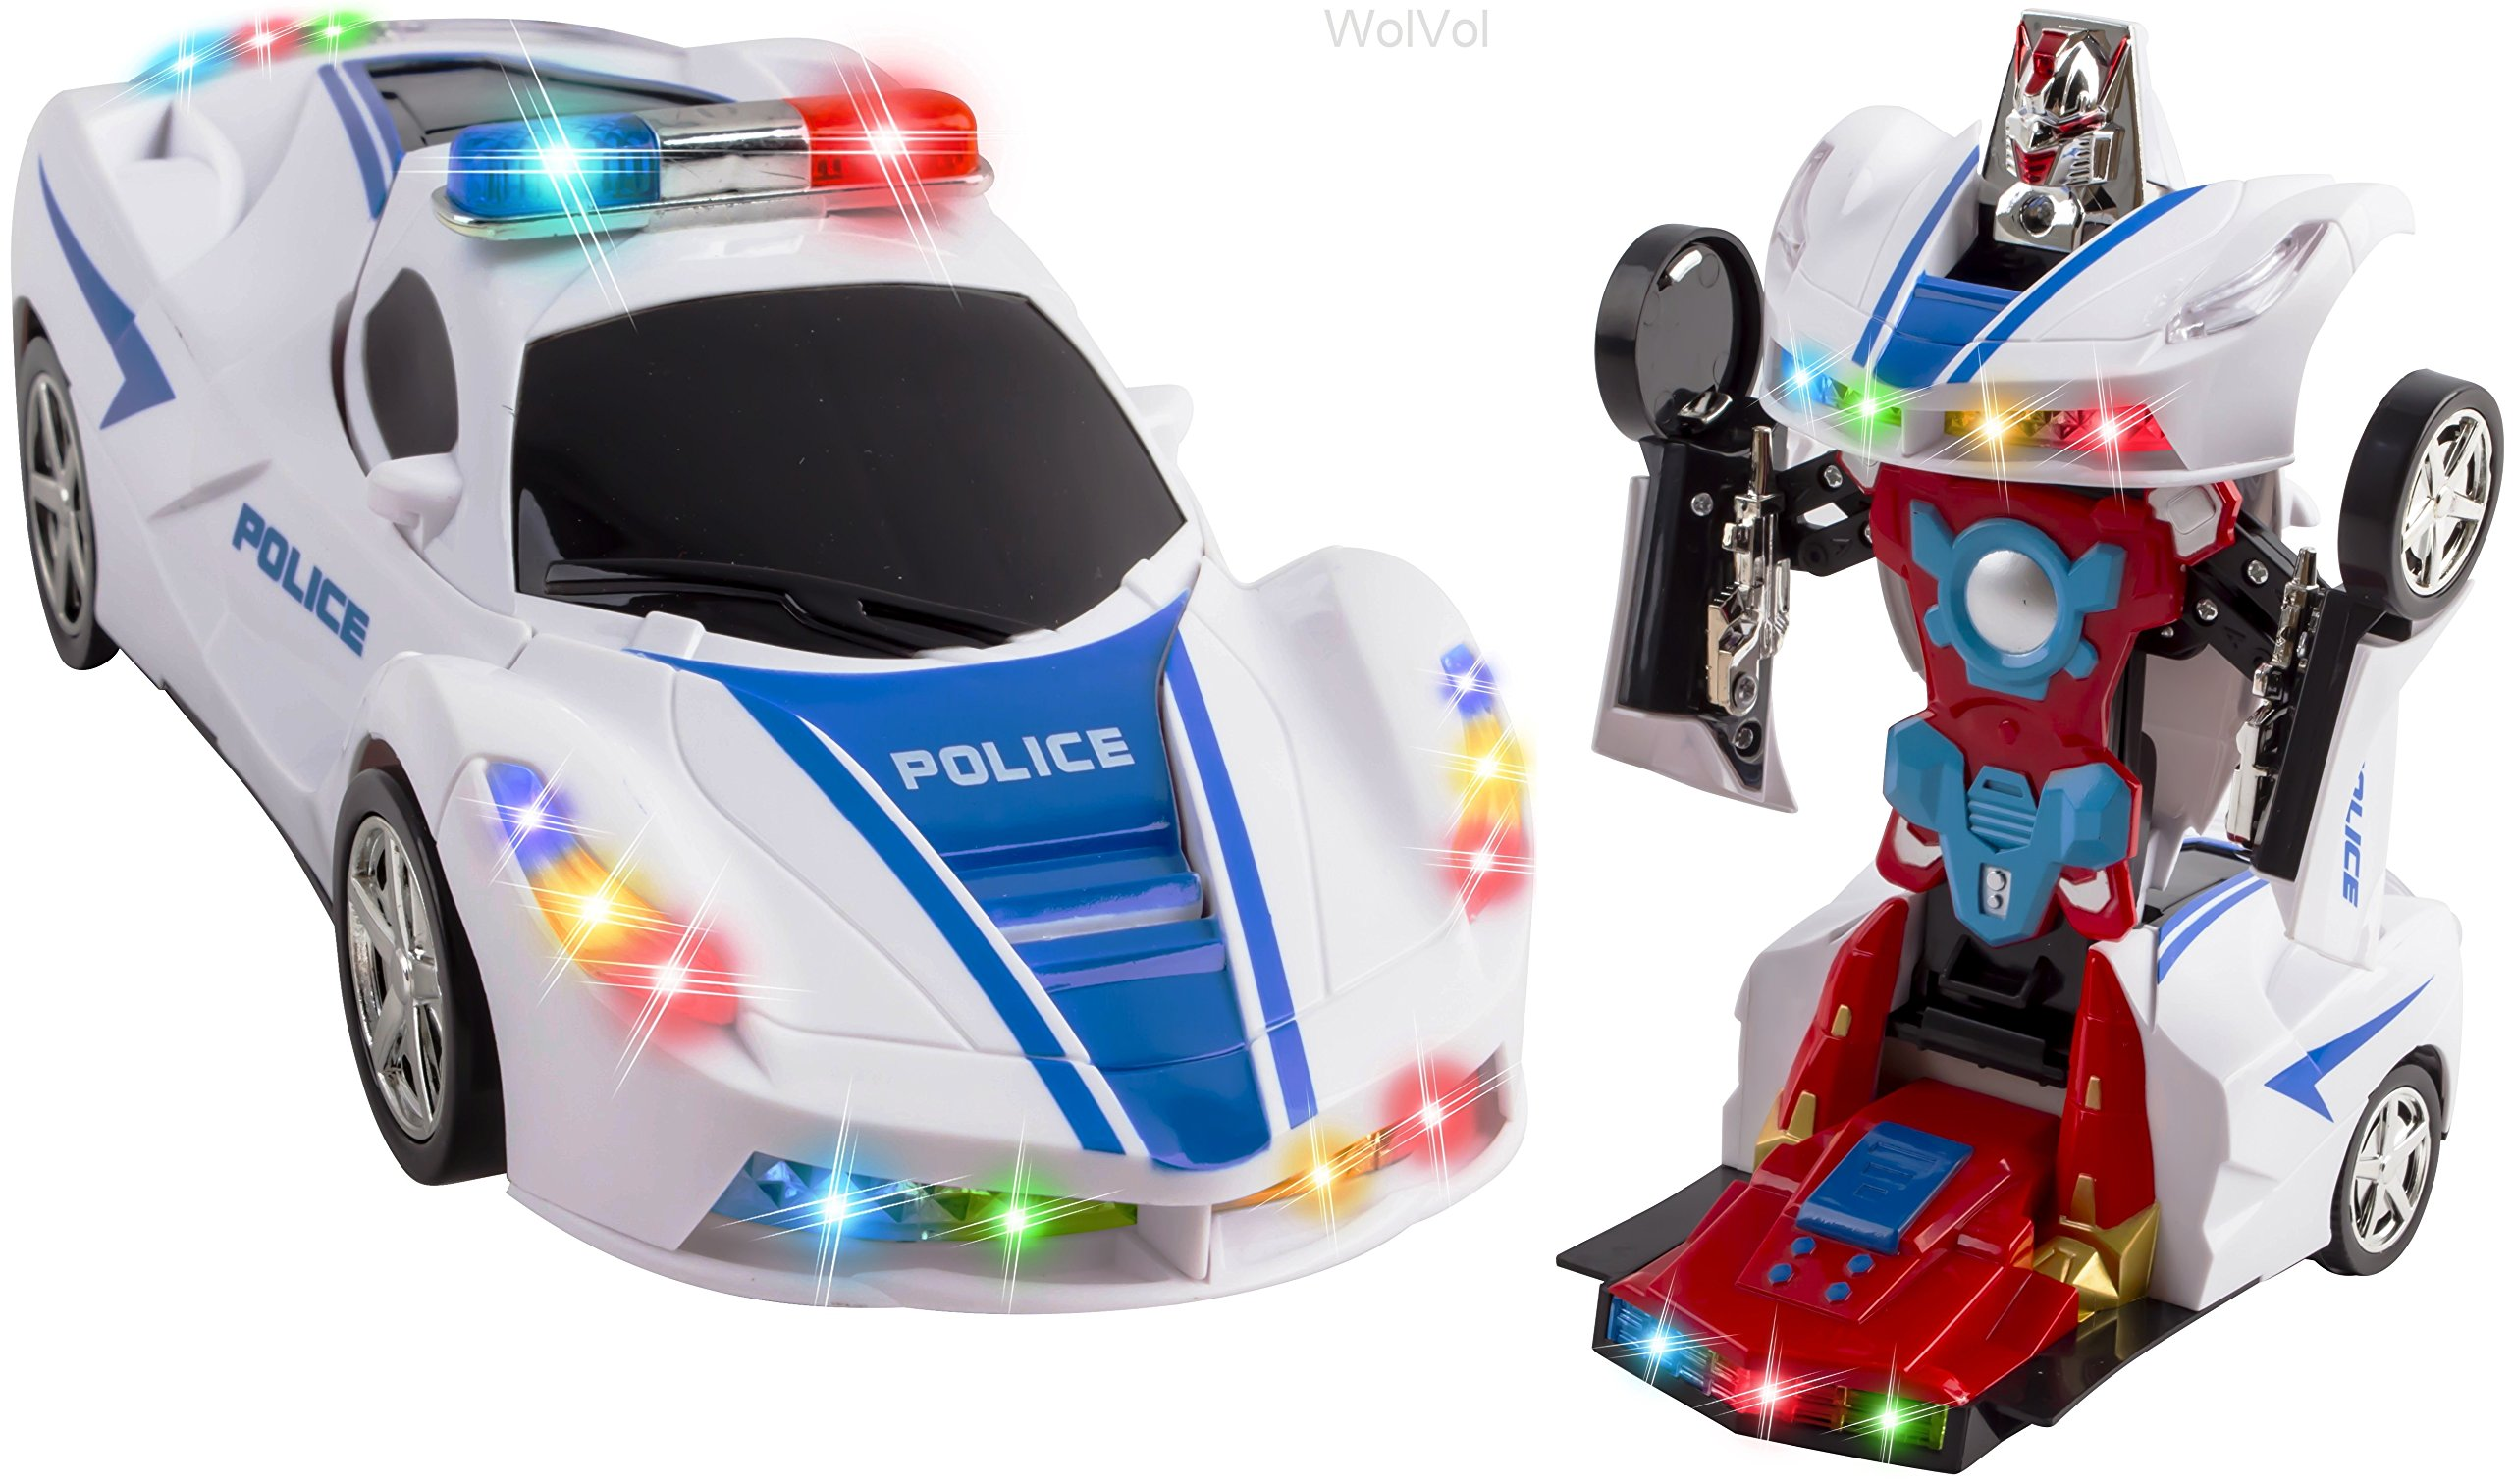 Police Toys For Boys : Toys for boys transformers robot police car kids xmas gift